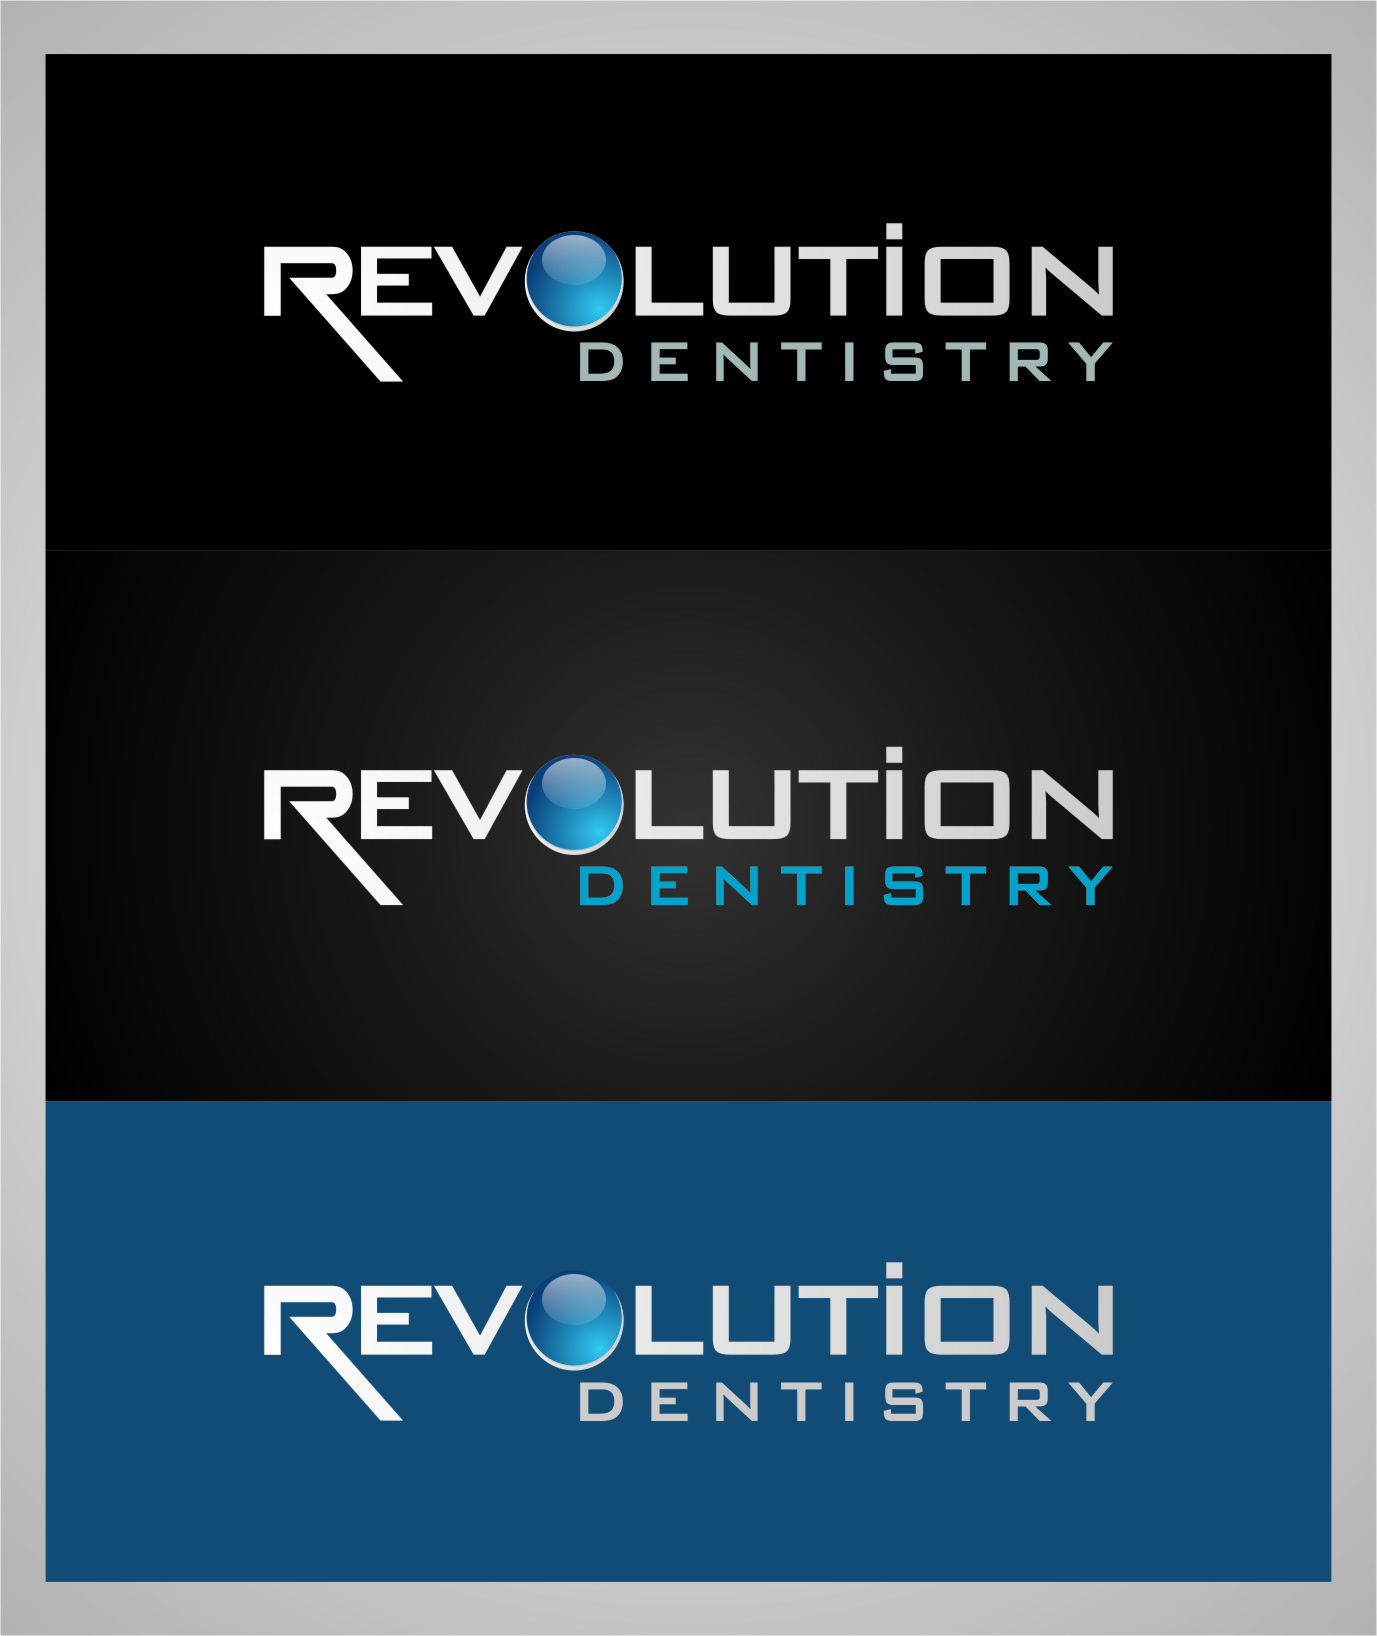 Logo Design by Ngepet_art - Entry No. 271 in the Logo Design Contest Artistic Logo Design for Revolution Dentistry.